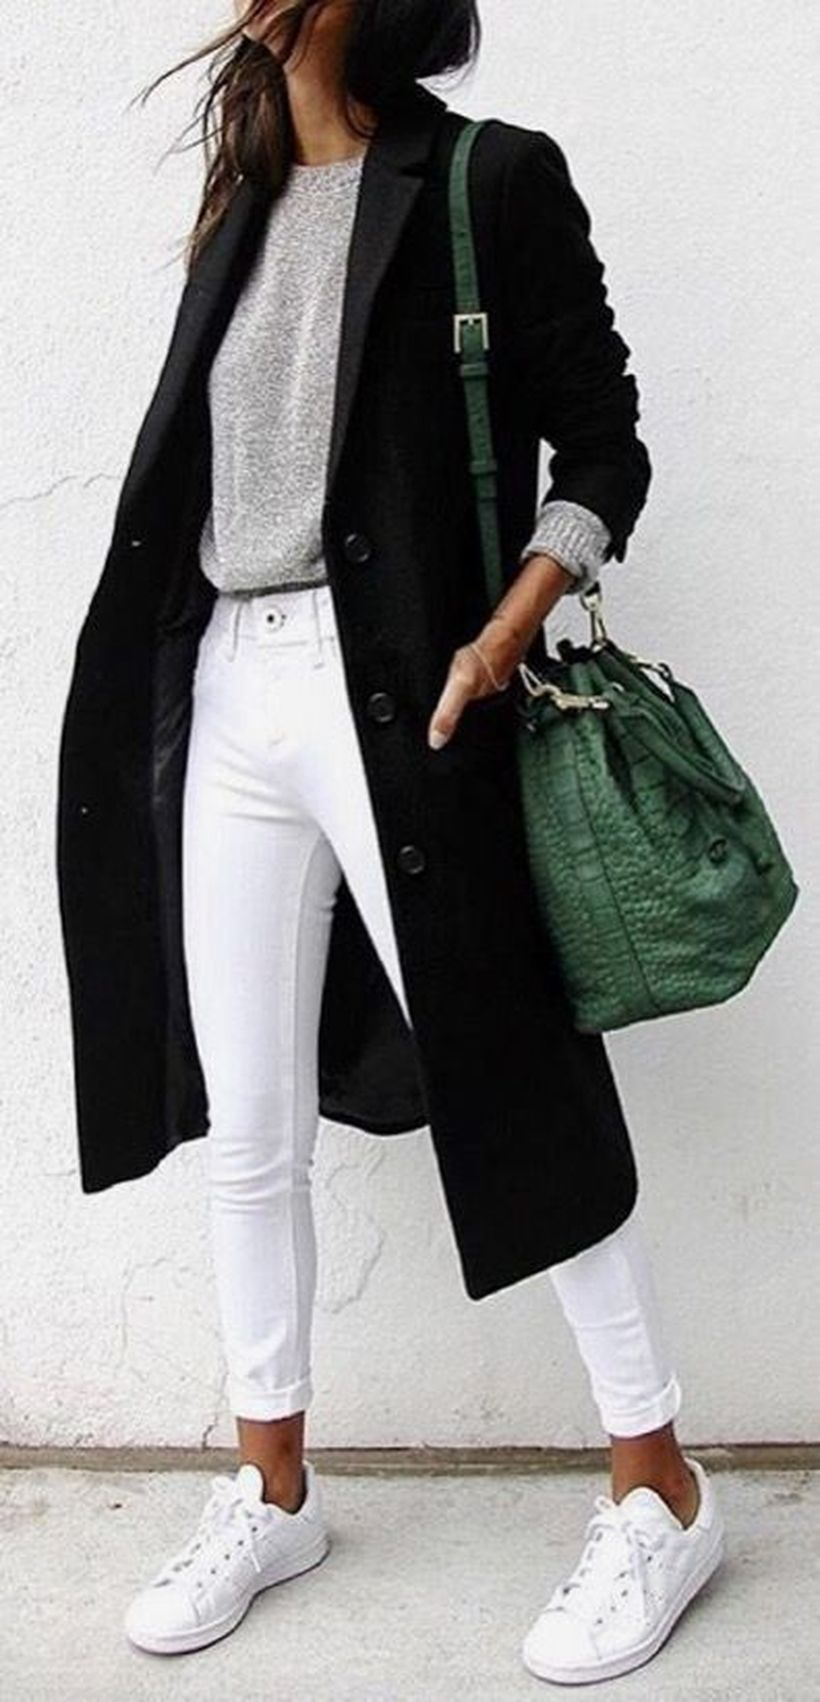 2017 fall fashions trend inspirations for work 33